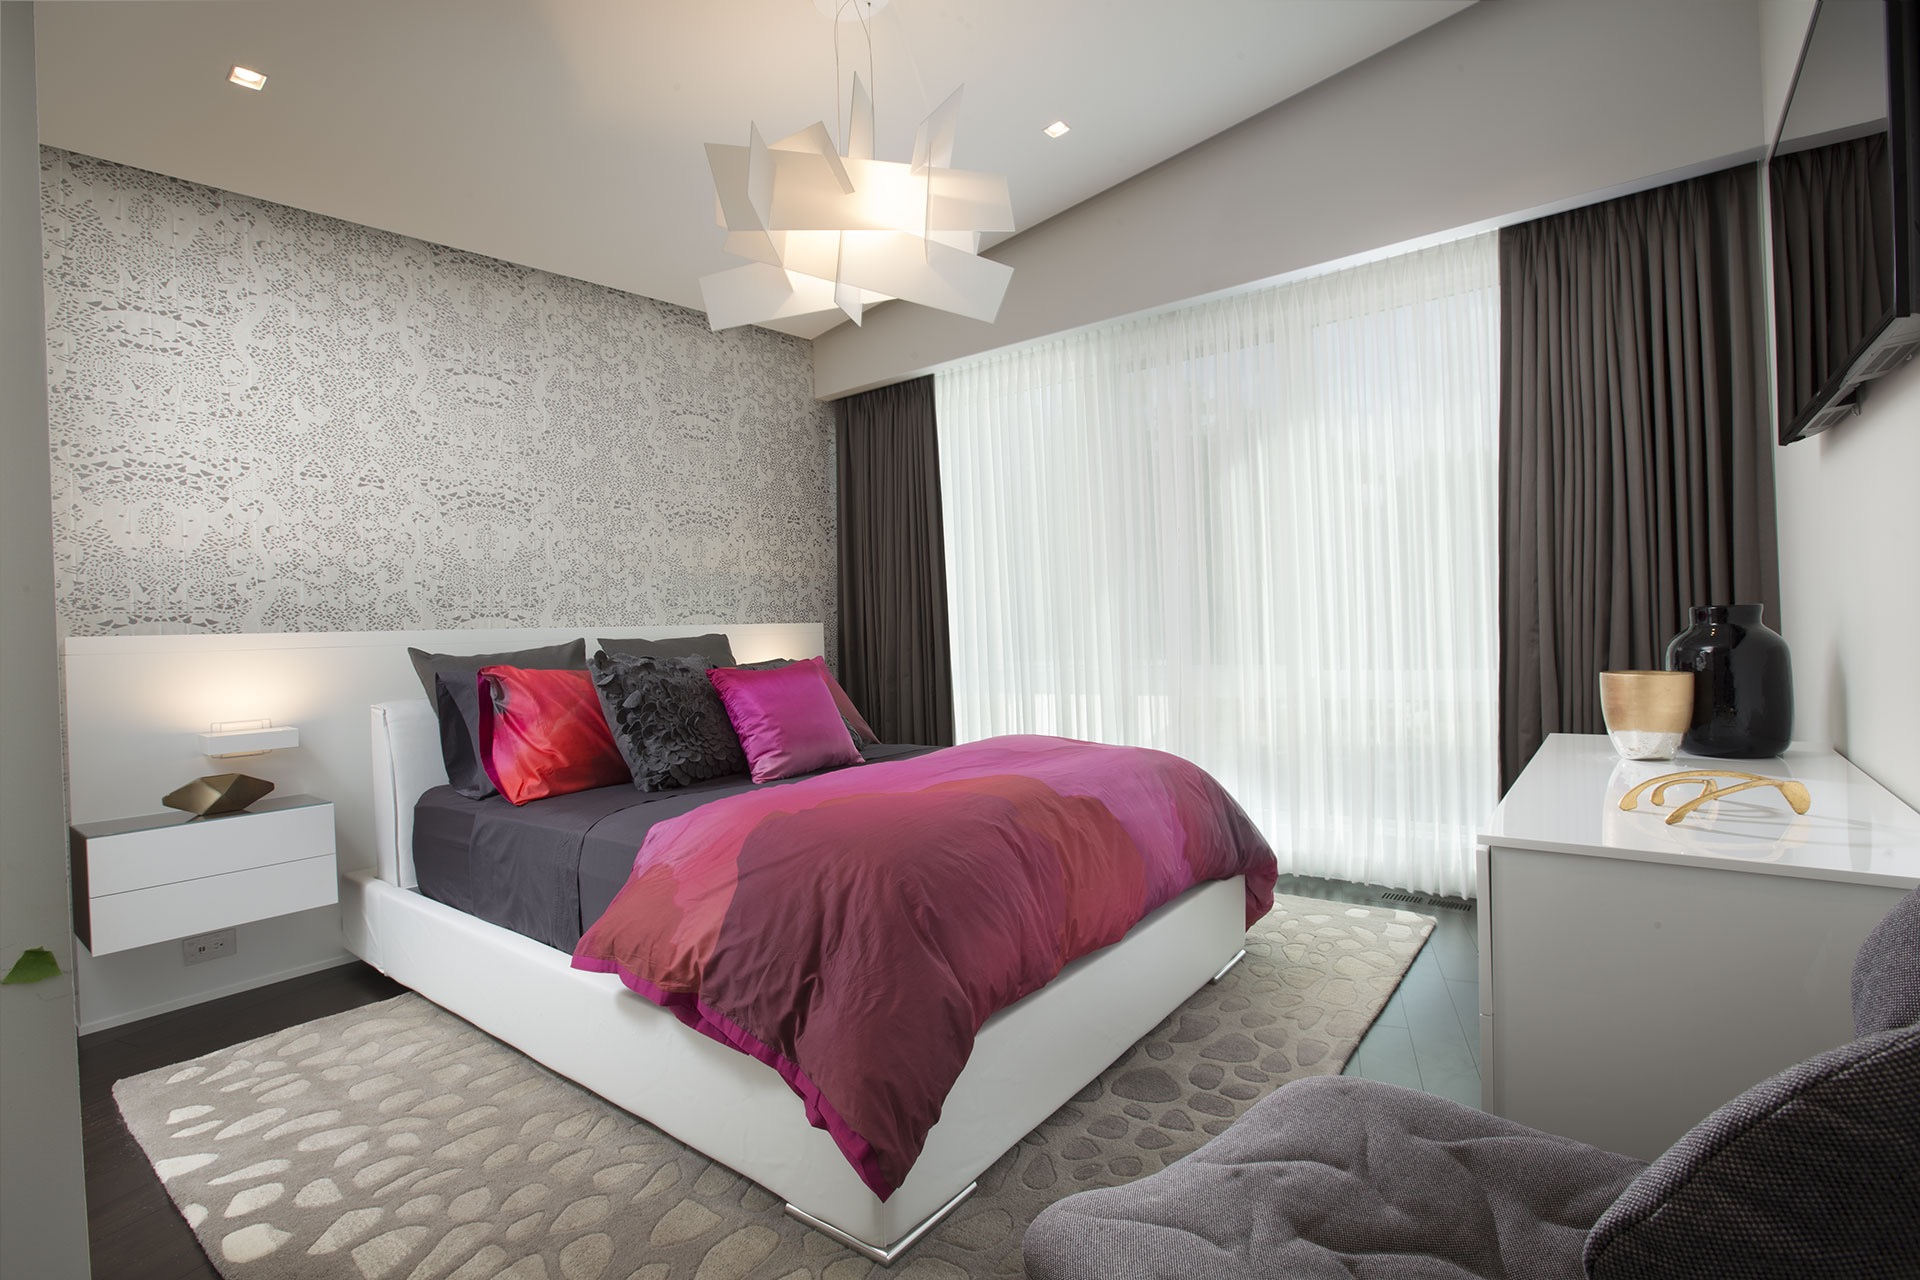 Modern Gray Bedroom With Pink Duvet  (Image 13 of 22)